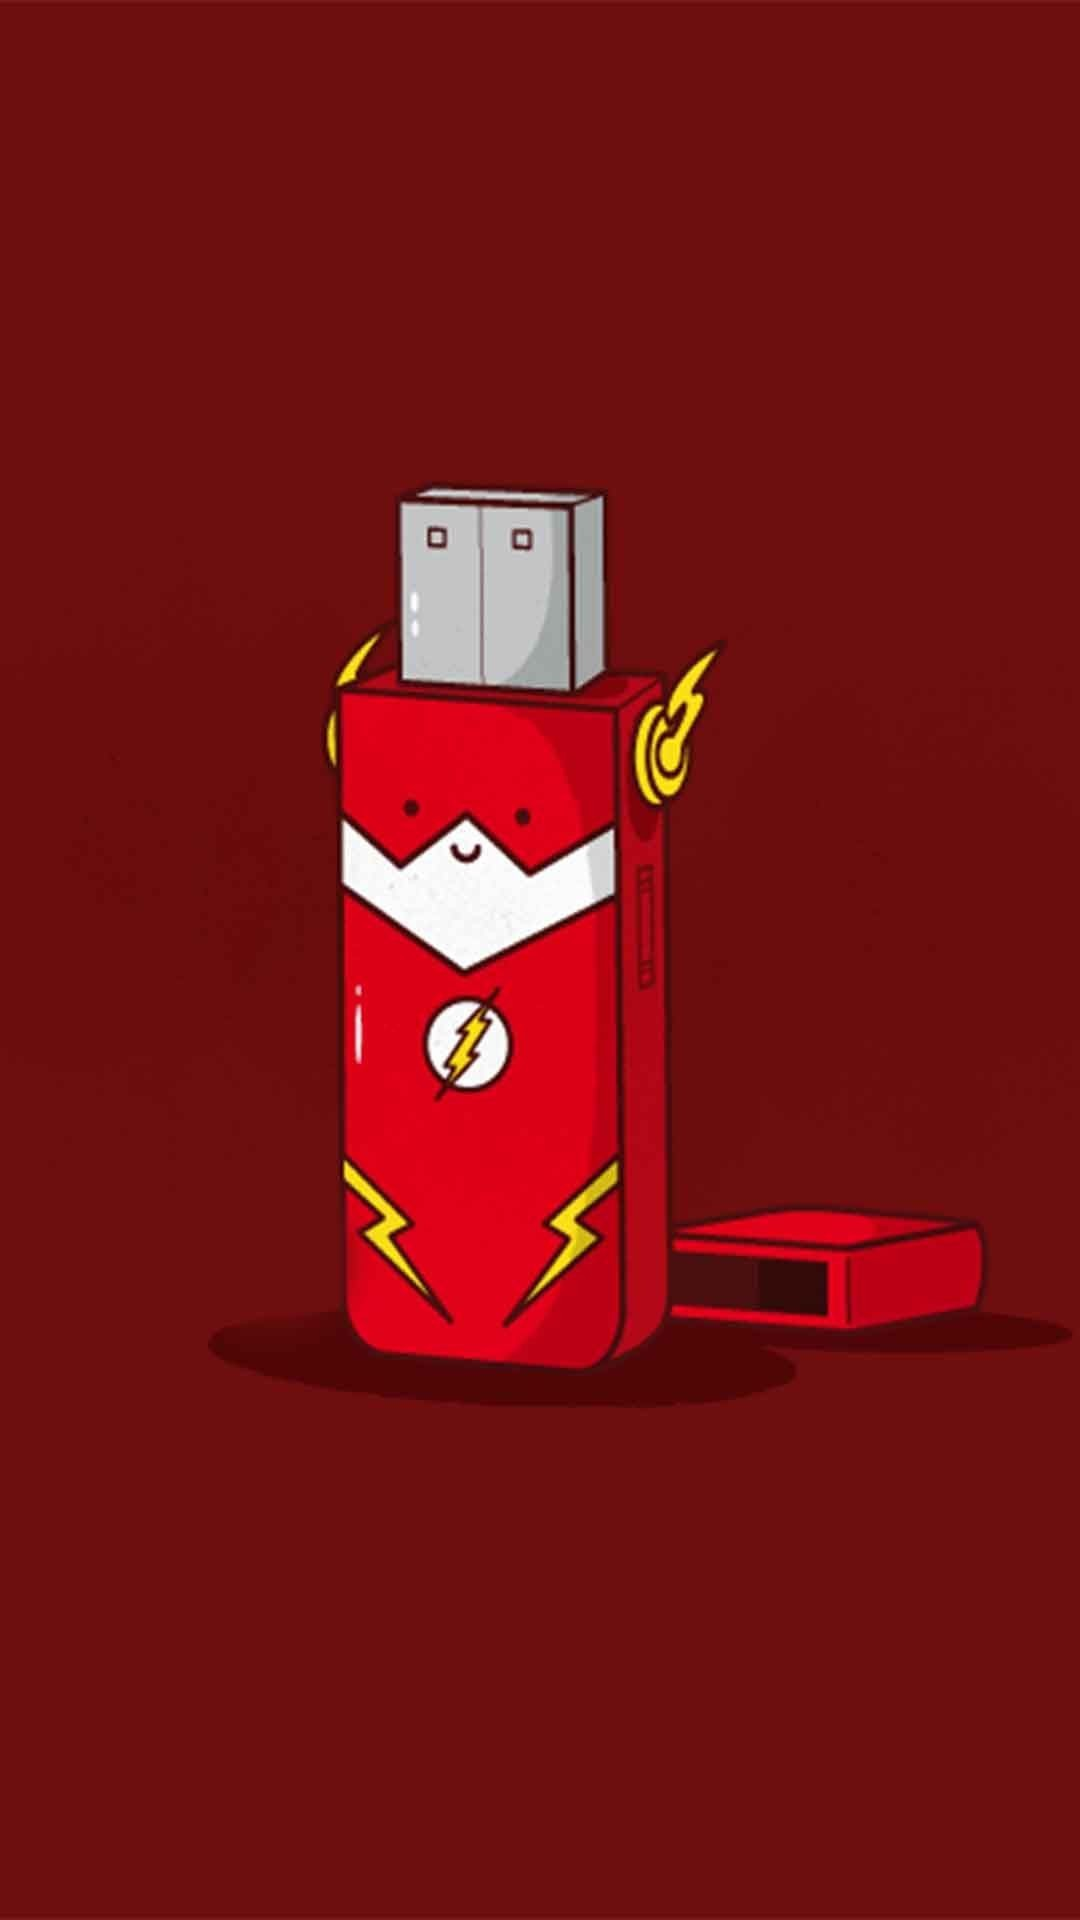 the flash superhero wallpaper, flash symbol wallpaper